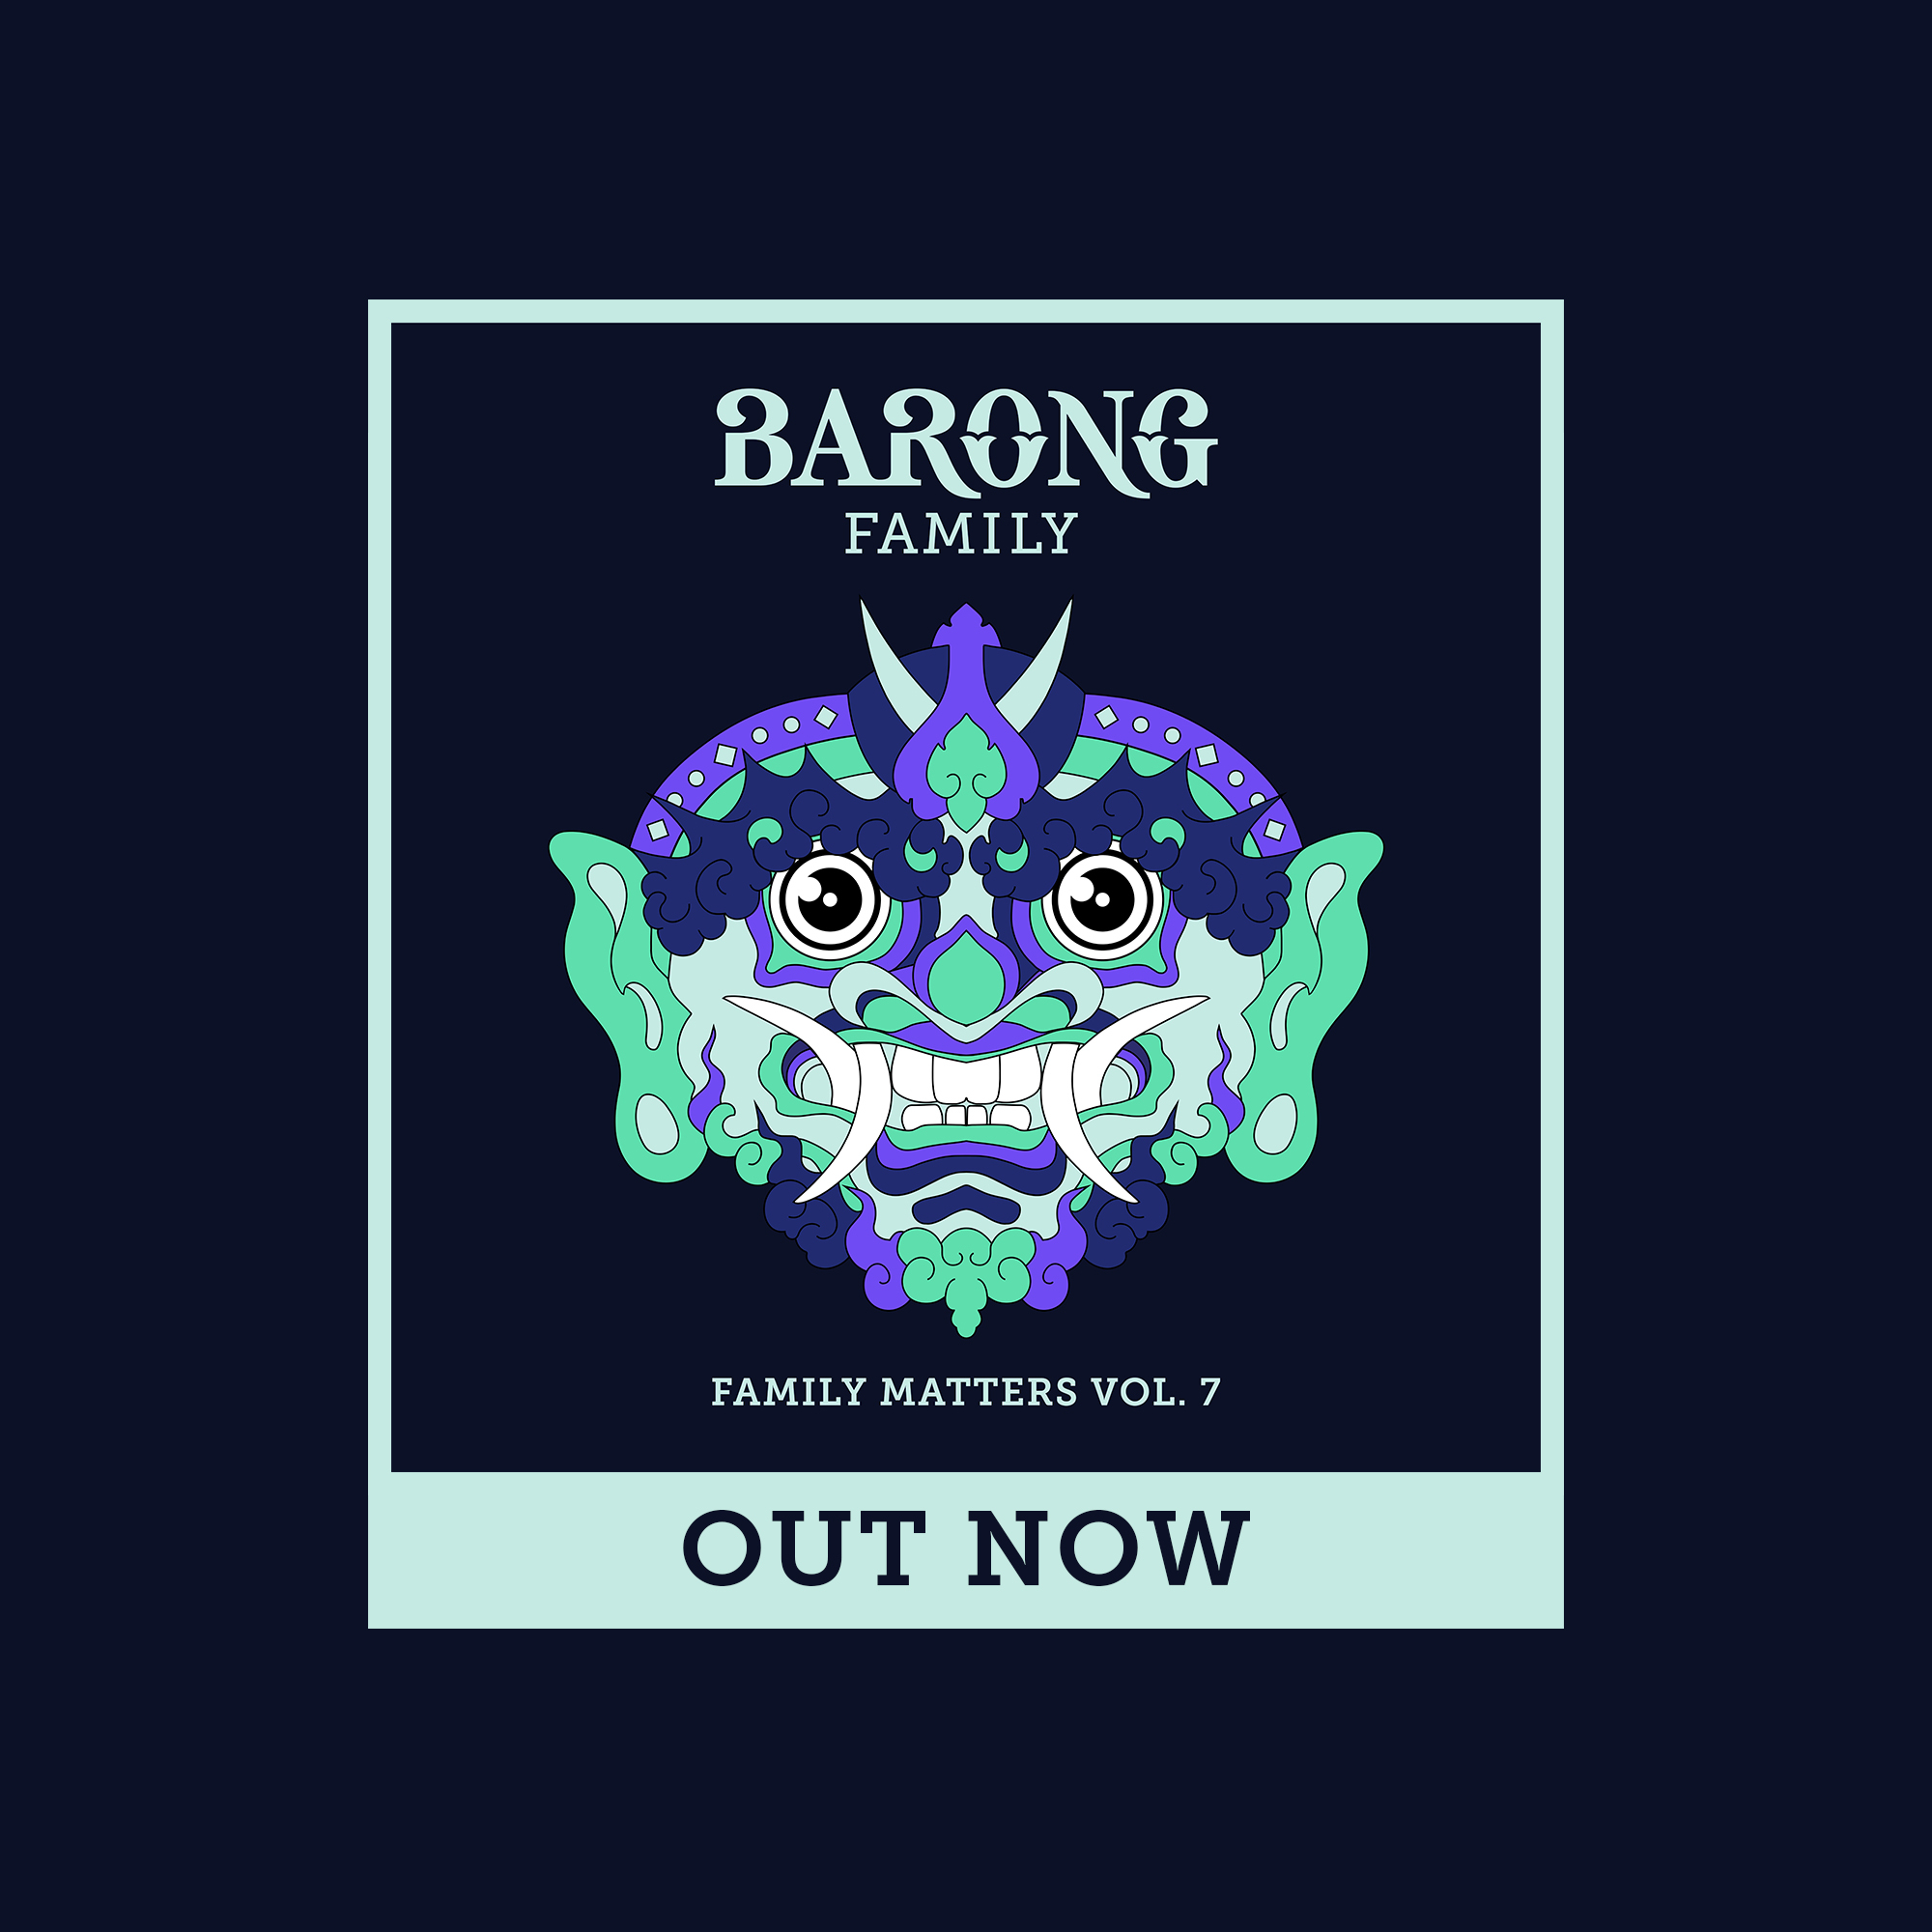 barong family on twitter happy release day family matters vol 7 out now get ready for the weekend and check out the brand new album https t co vzgoqqkad5 https t co qbebvro8c5 twitter